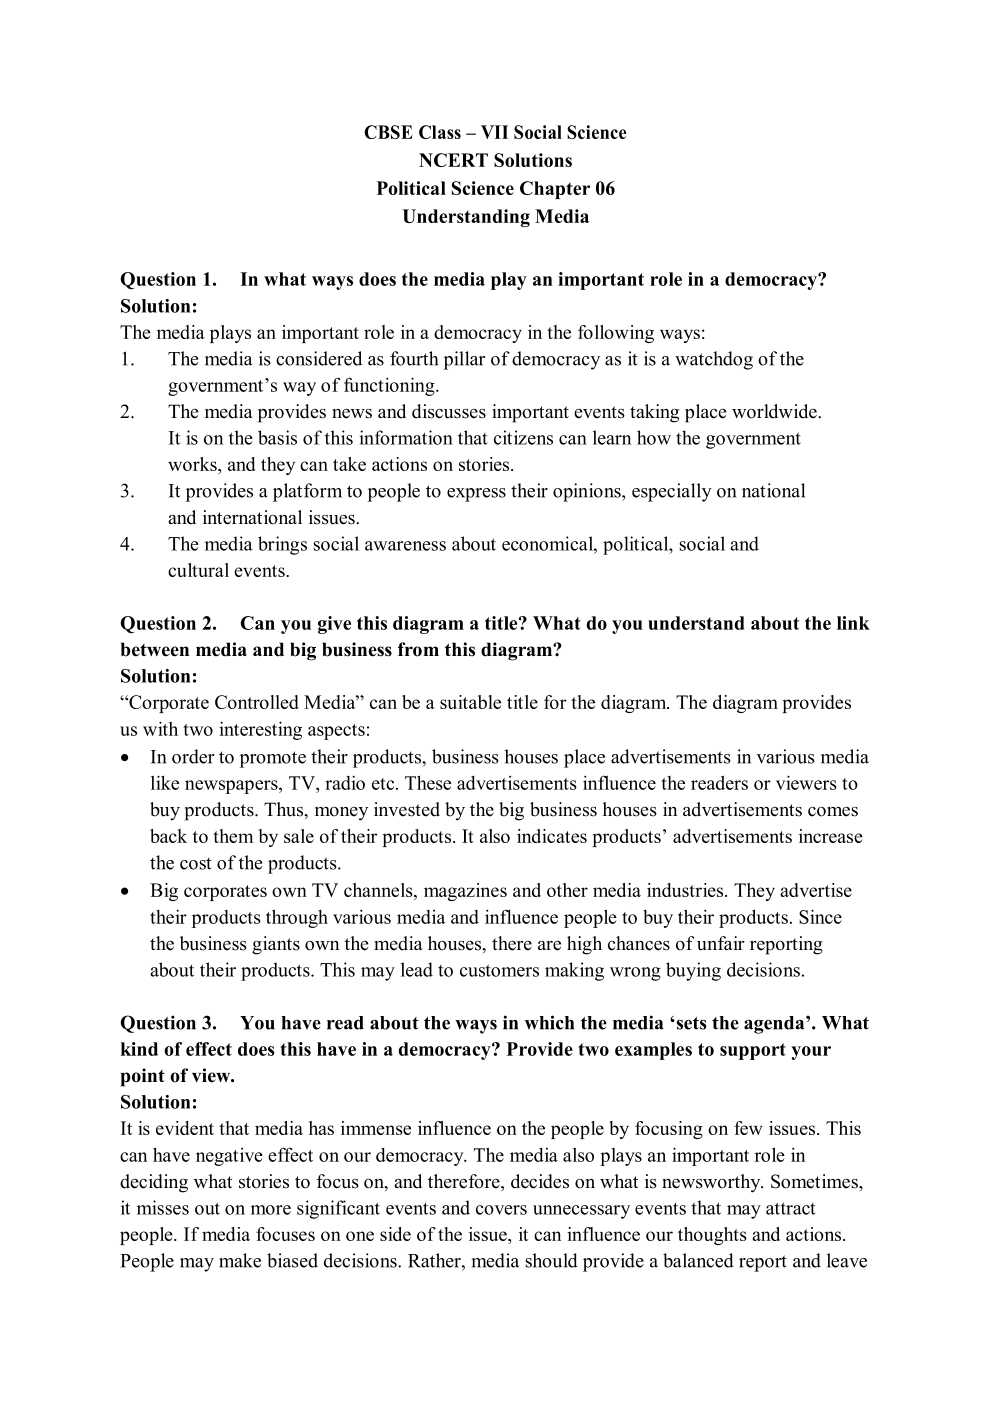 NCERT Solutions For Class 7 social science social and political life chapter 6